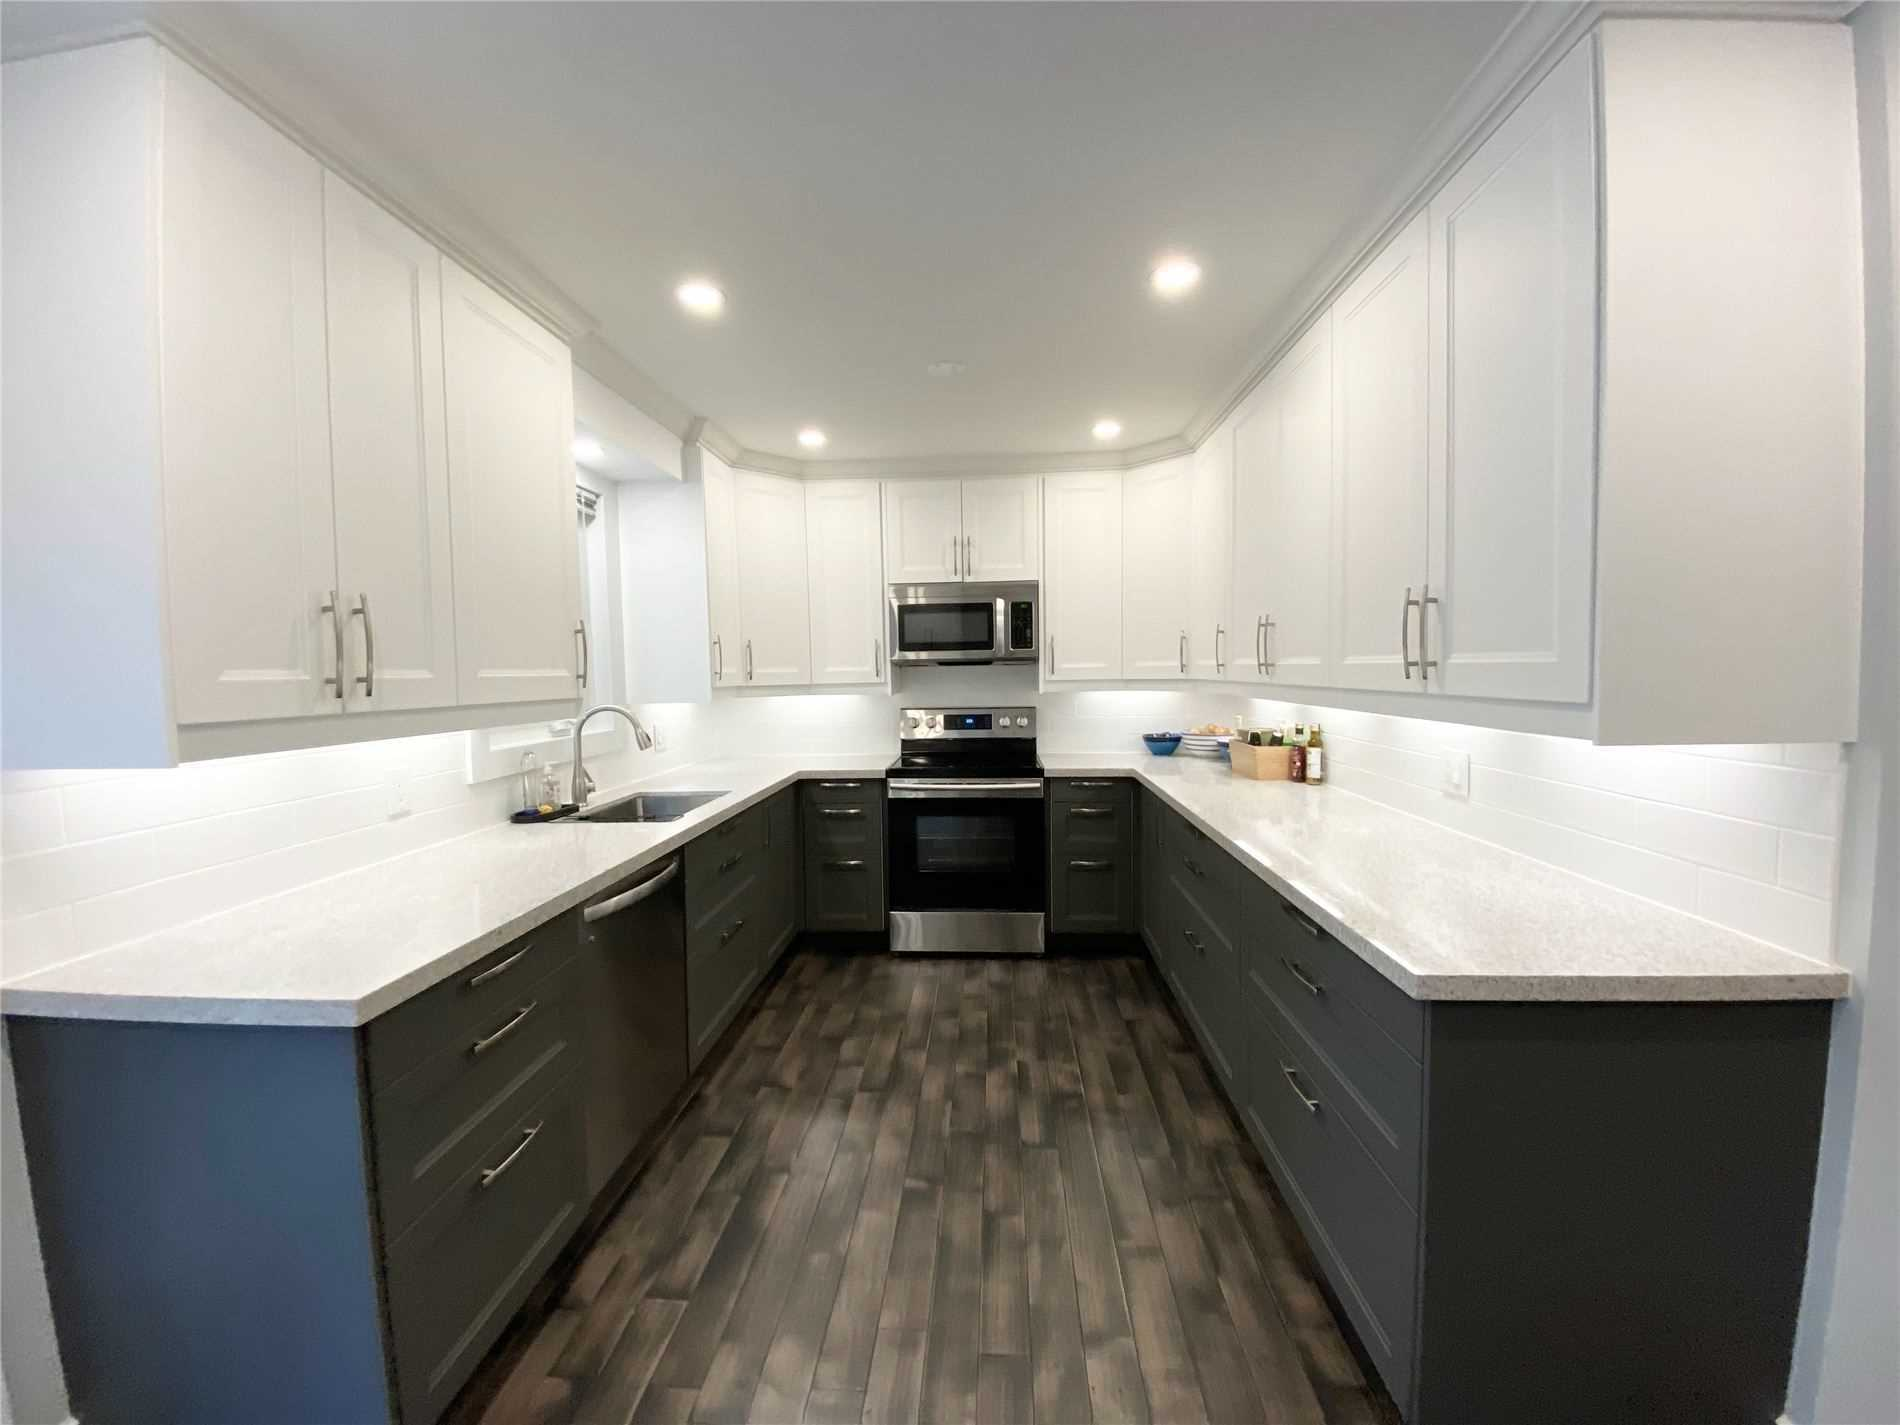 Detached house For Lease In Barrie